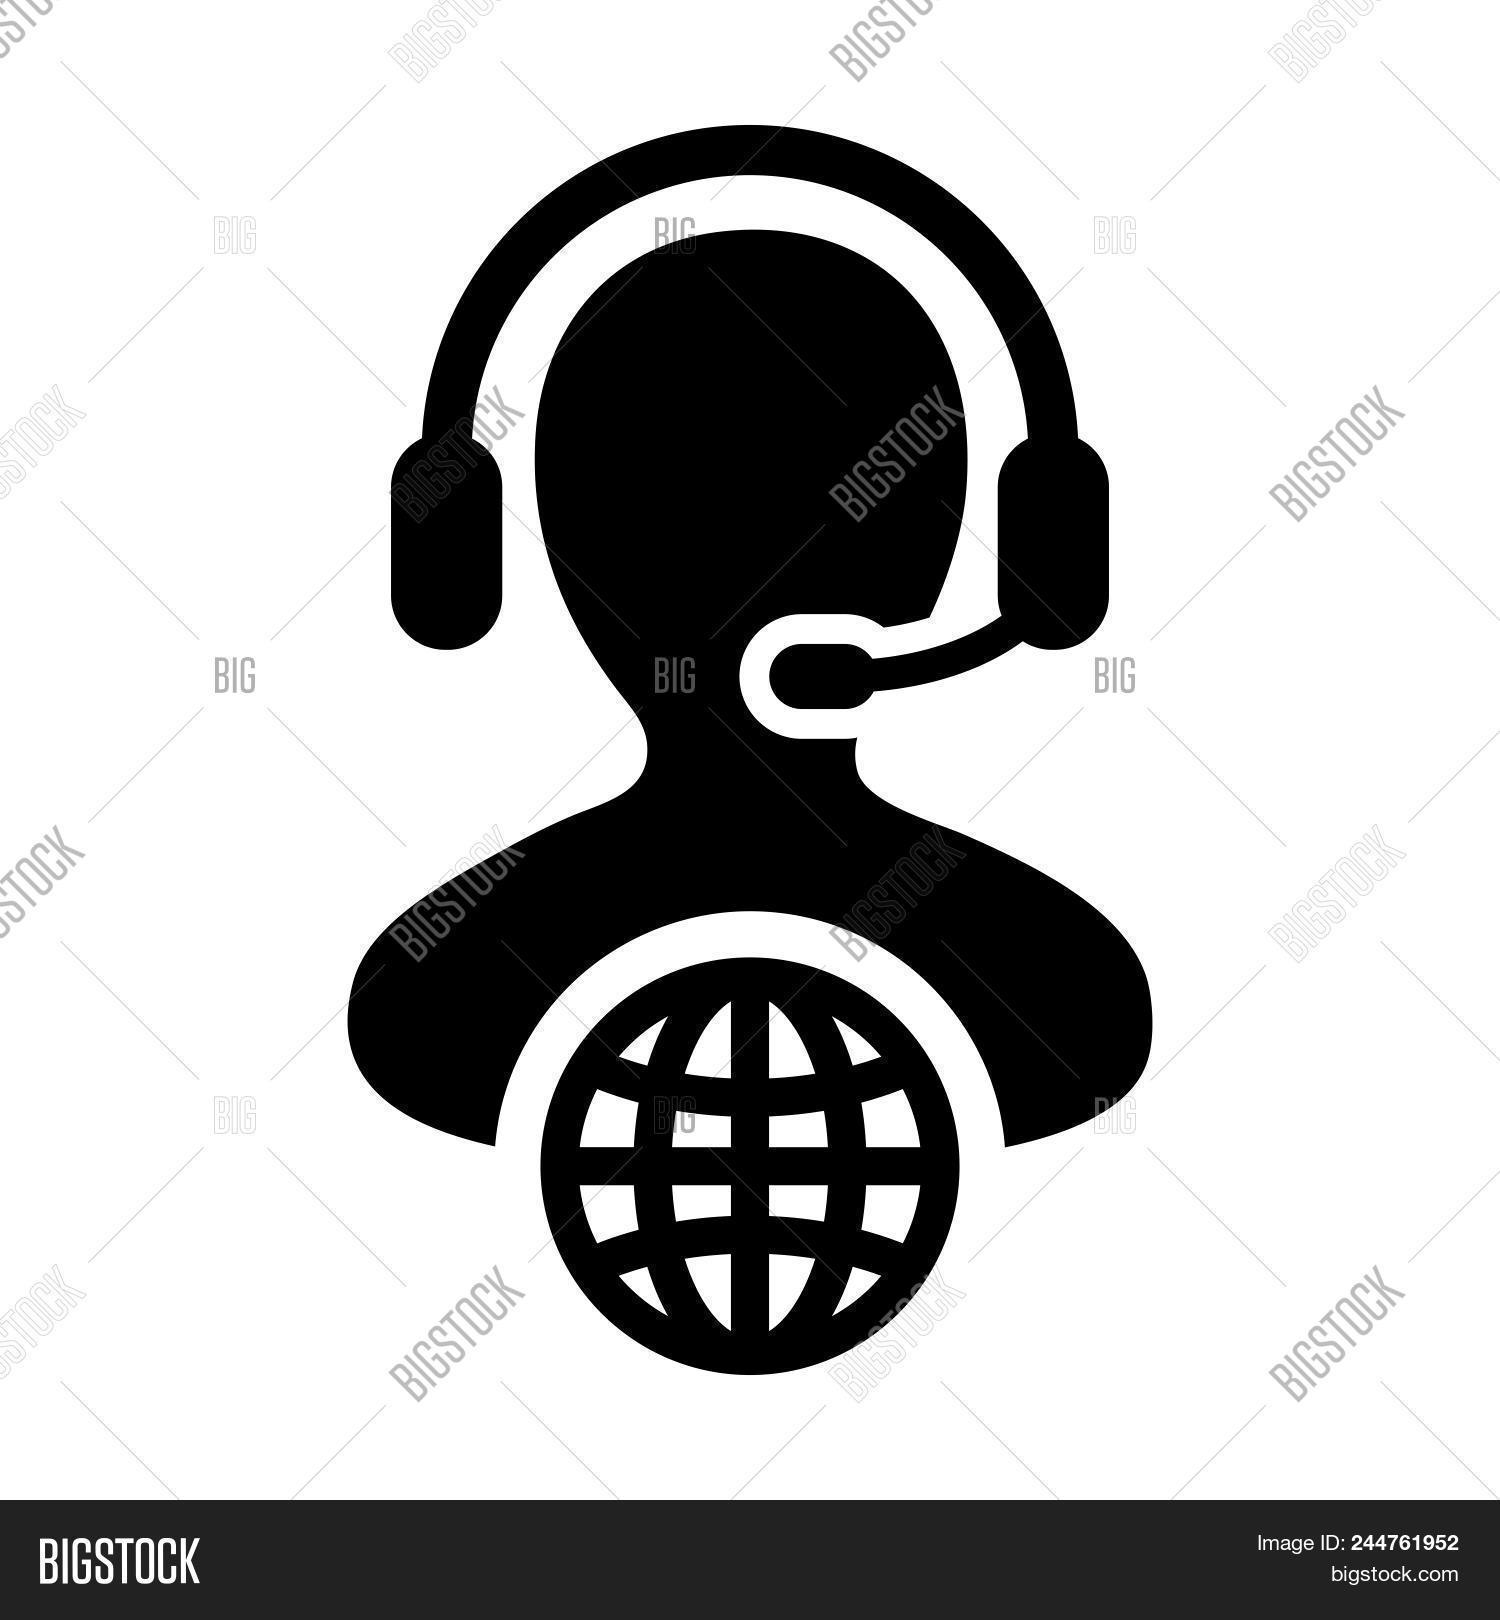 Account,Art,Avatar,Black,Boy,Business,Businessman,Call,Care,Center,Clip,Color,Connection,Contact,Customer,Design,Desk,Employee,Flat,Globe,Glyph,Graphic,Help,Helpline,Human,Icon,Interface,Internet,Male,Man,Network,People,Person,Pictogram,Profile,Relation,Satisfaction,Service,Sign,Staff,Support,Symbol,User,Vector,Worker,illustration